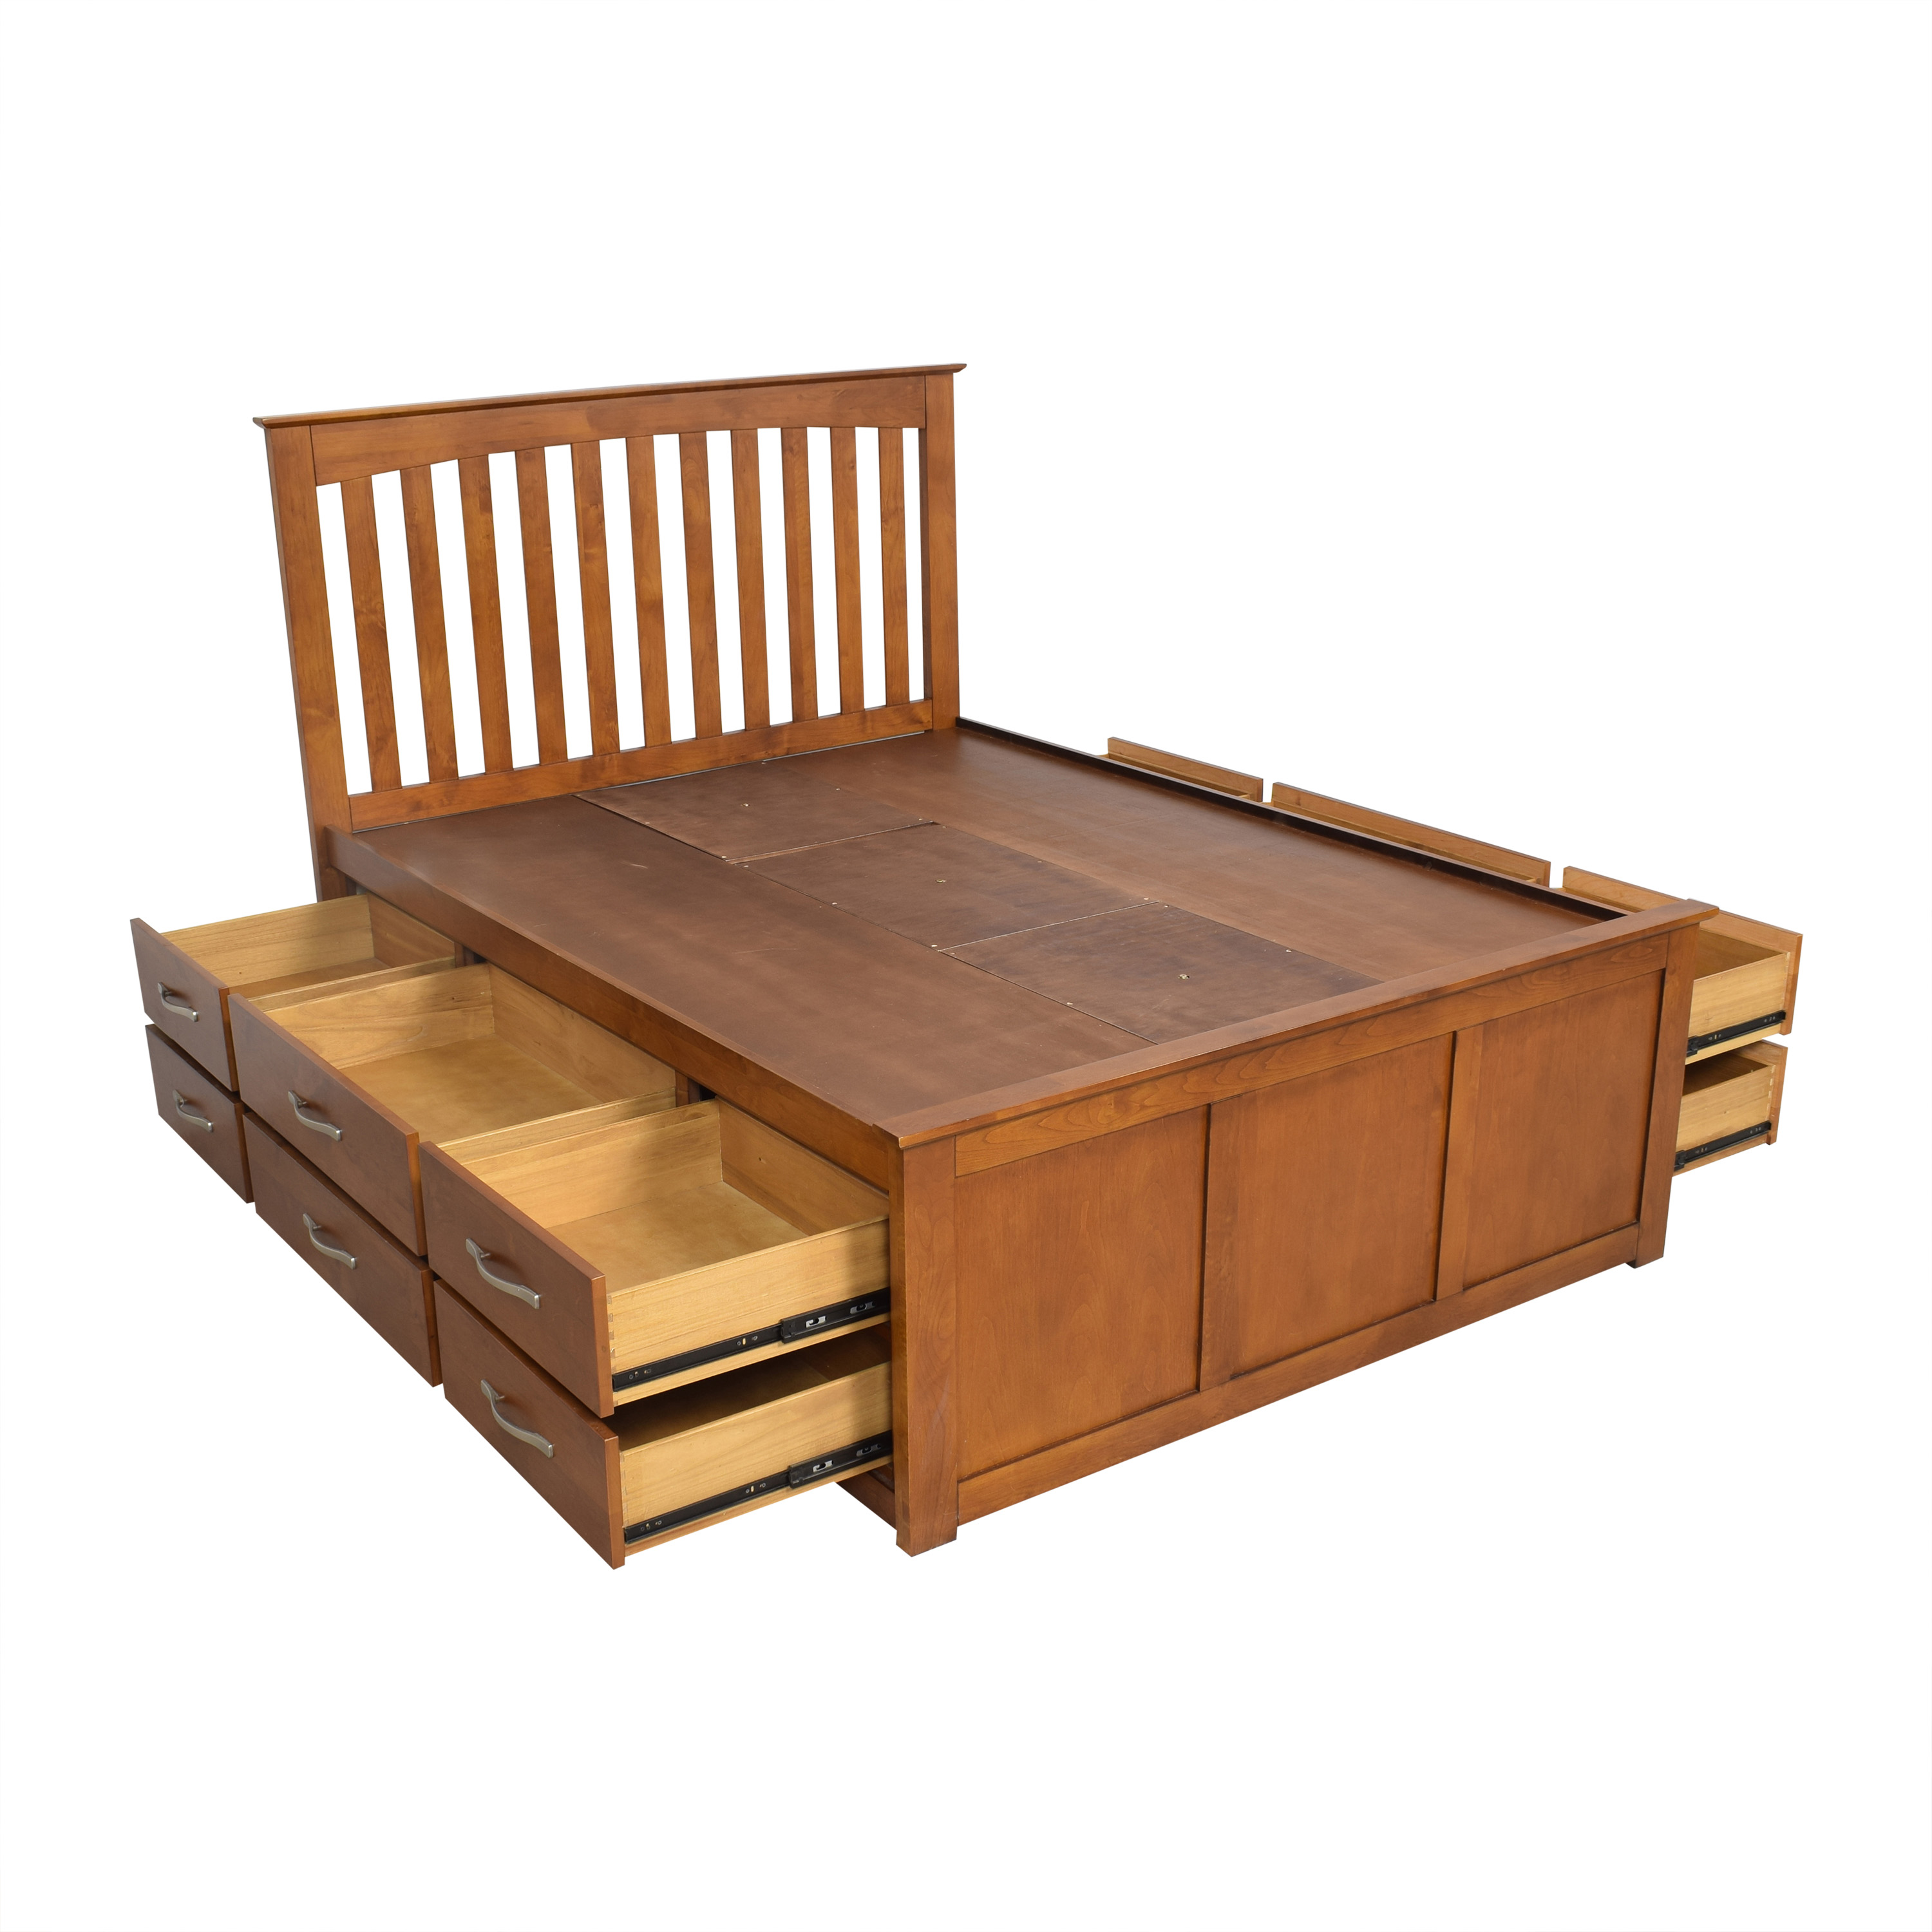 Raymour & Flanigan Raymour & Flanigan Everitt Queen Storage Bed used